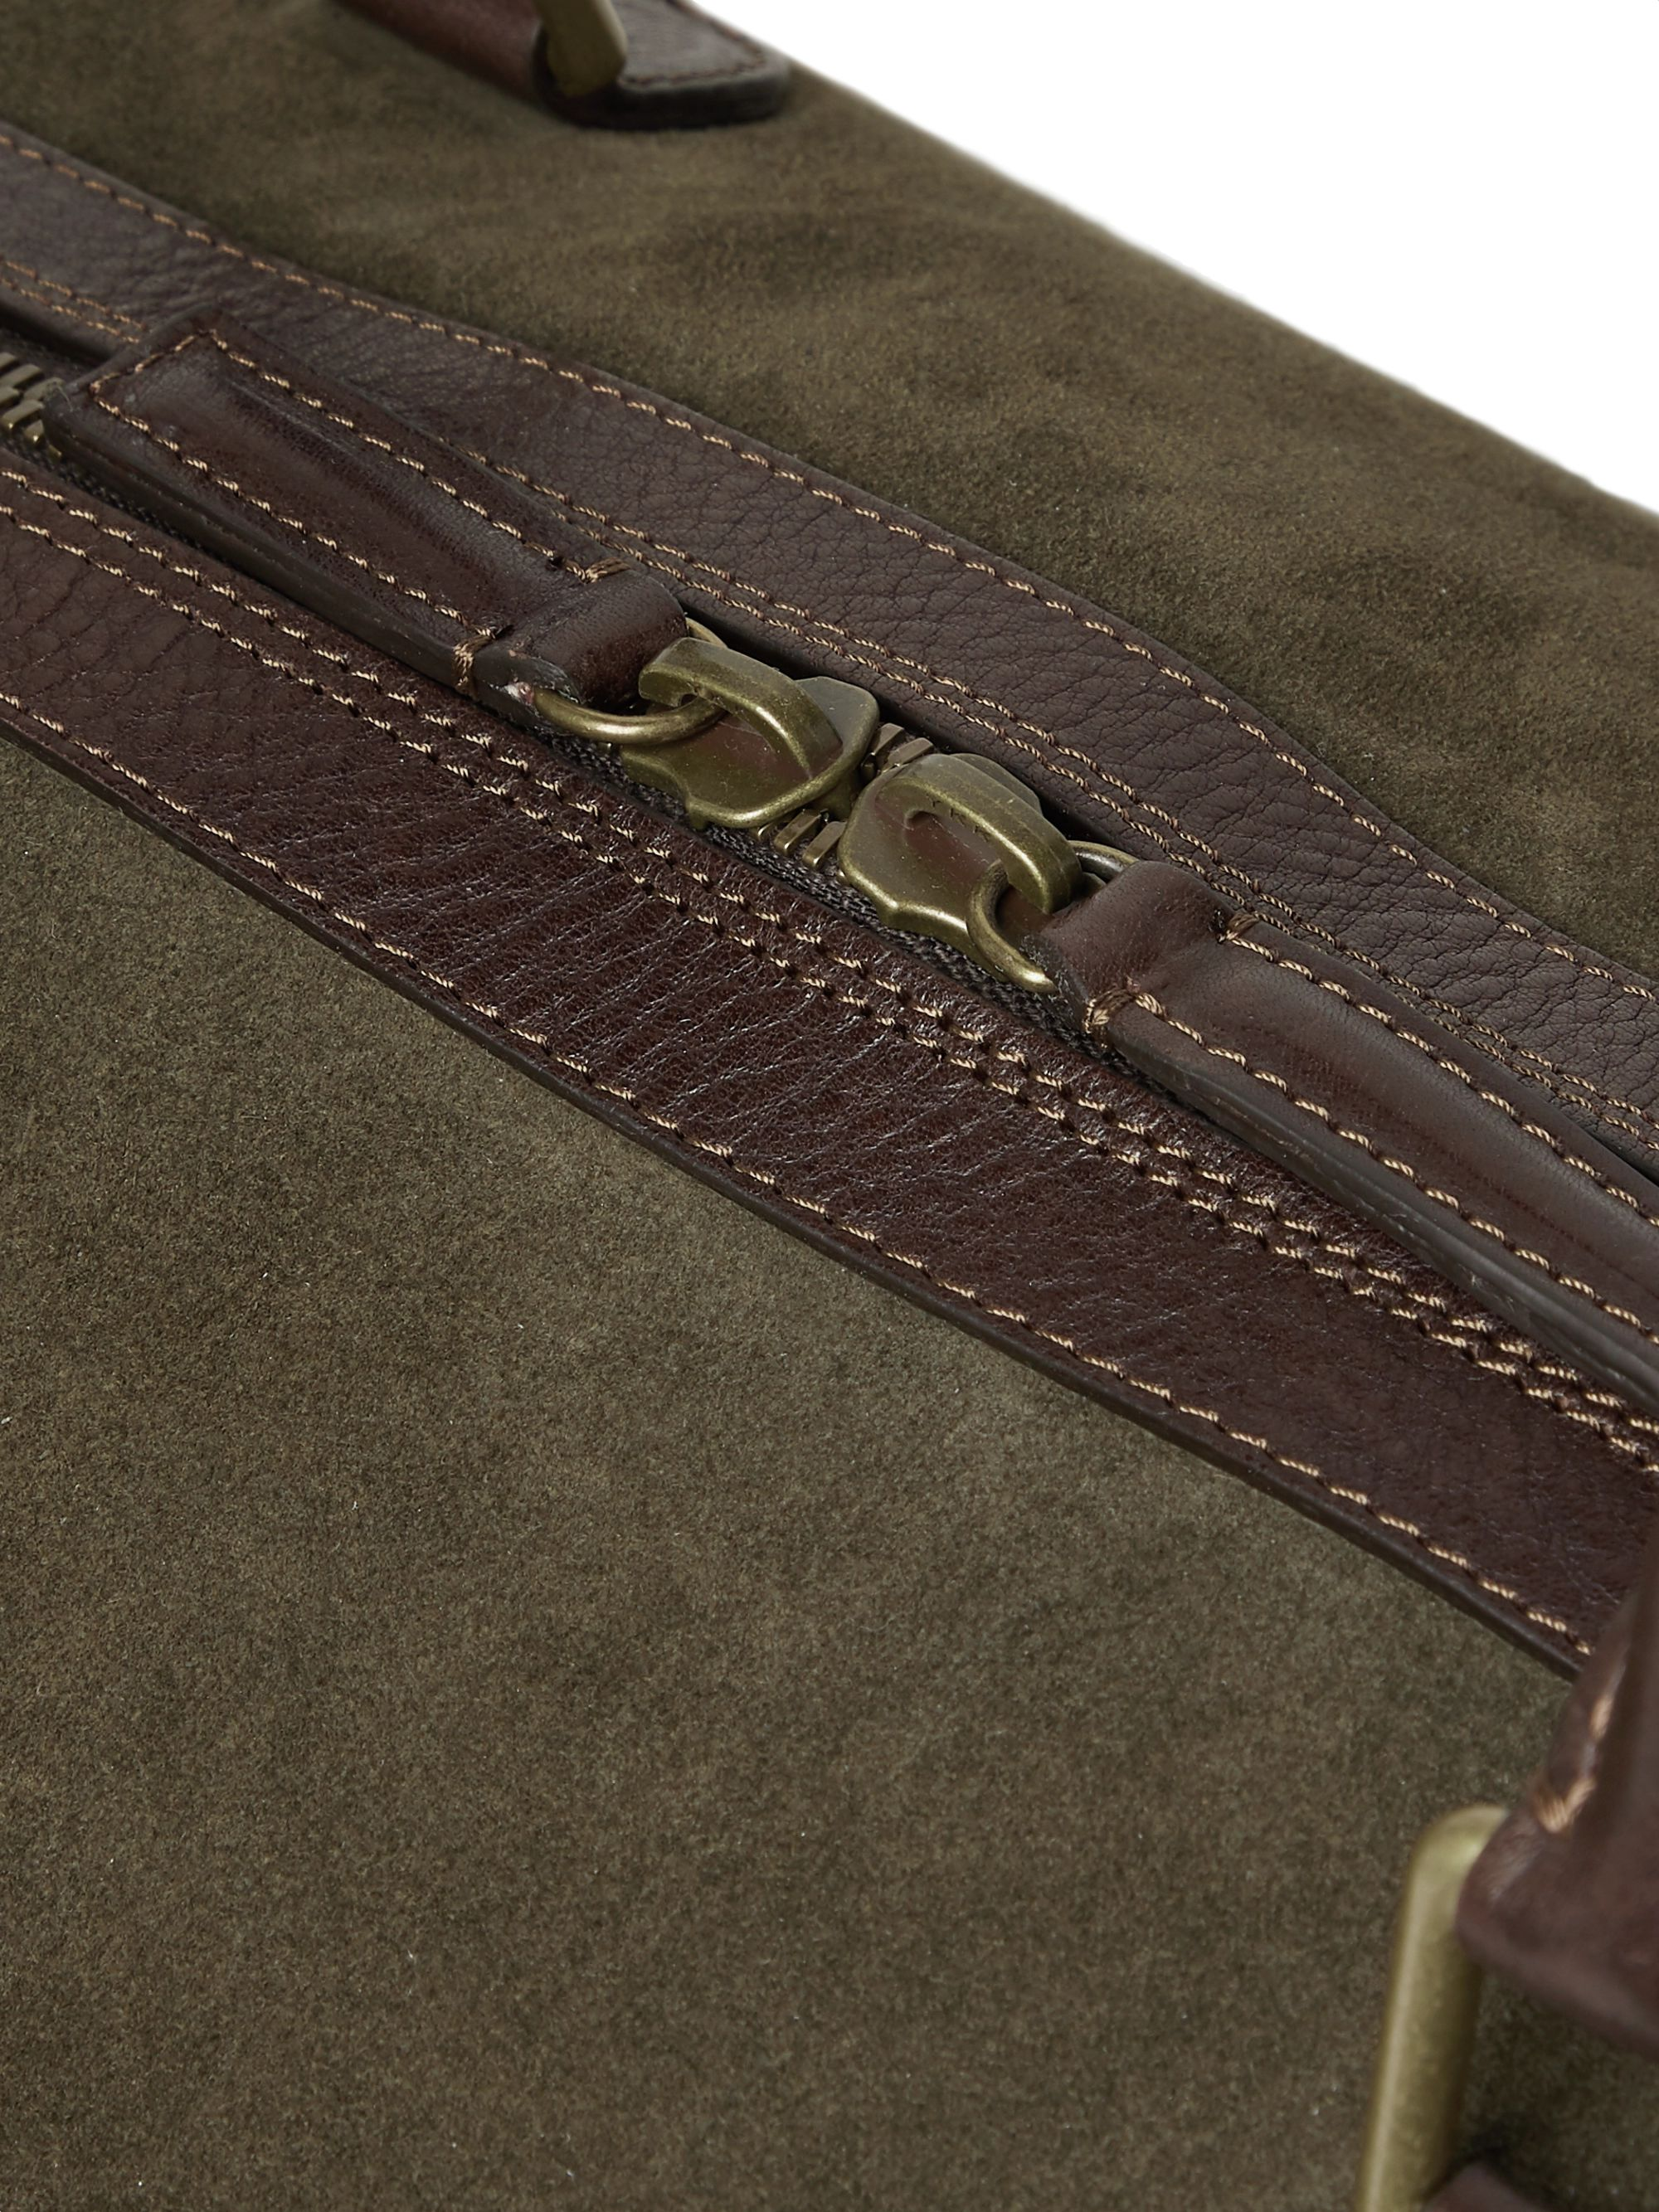 Anderson's Leather-Trimmed Suede Duffle Bag